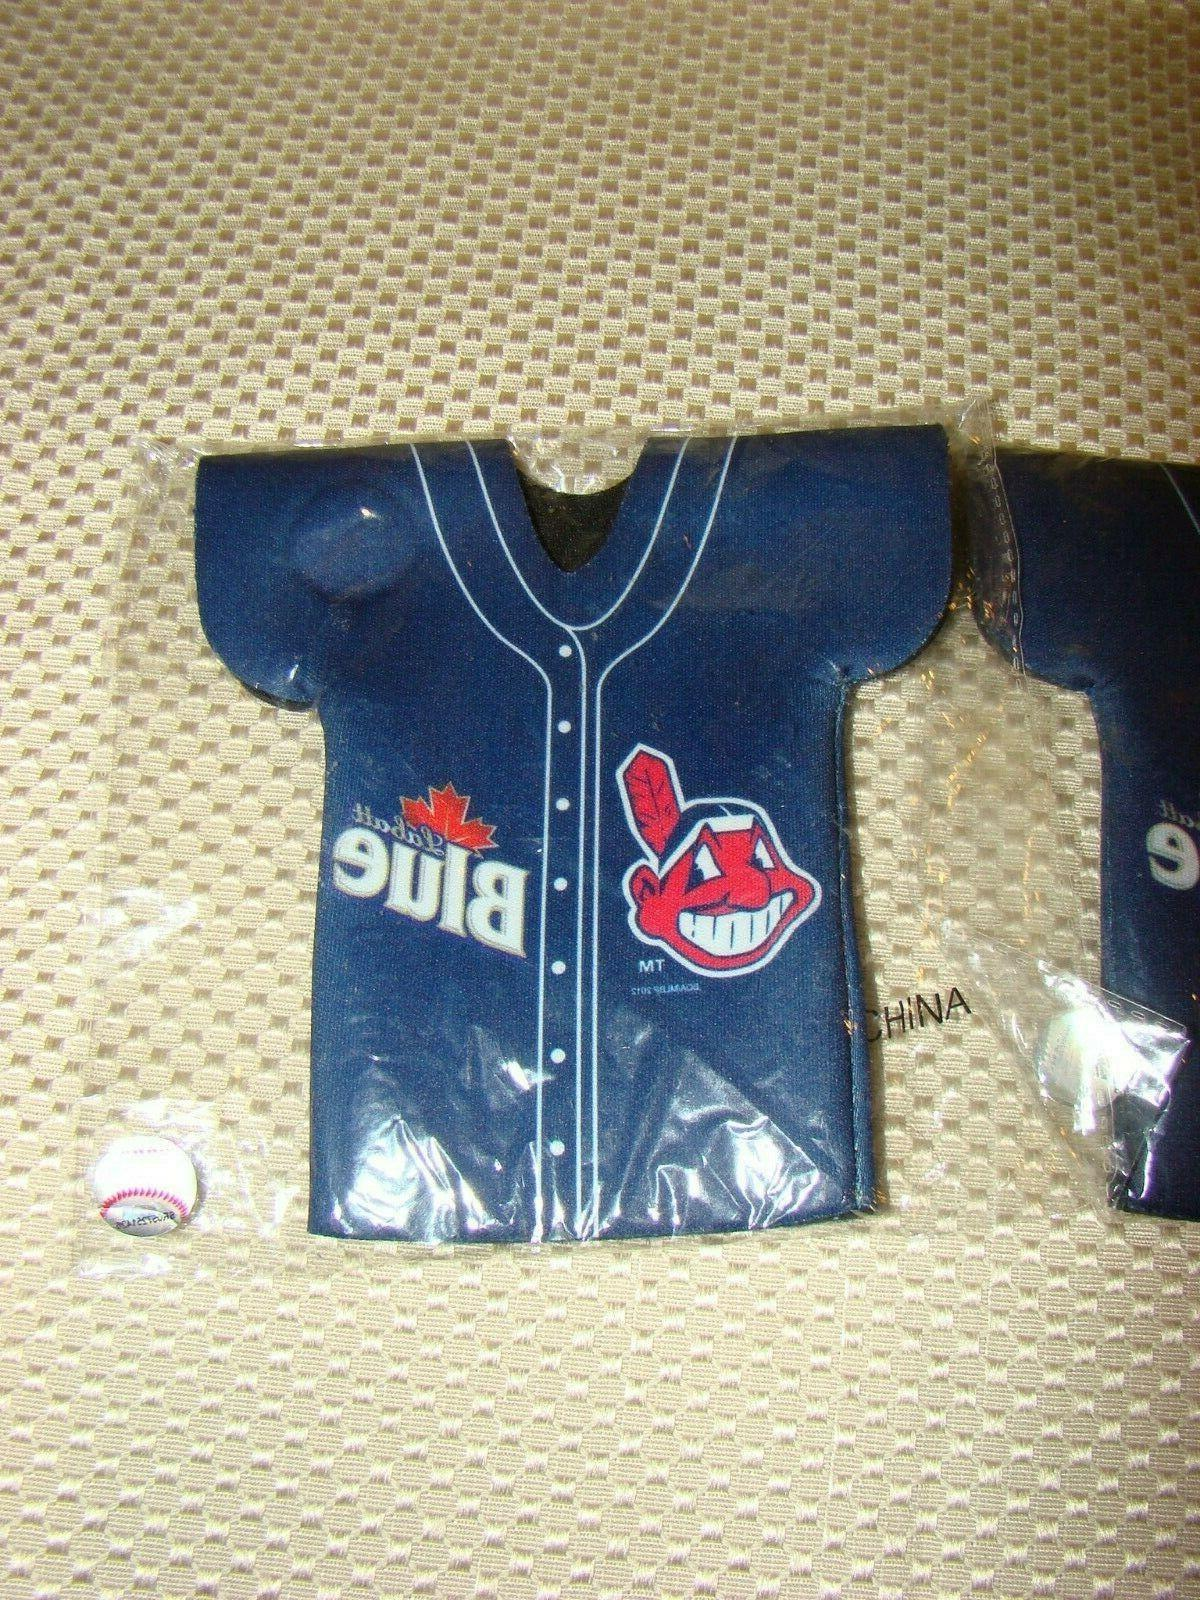 Lot of CLEVELAND JERSEY Coozies Coolers